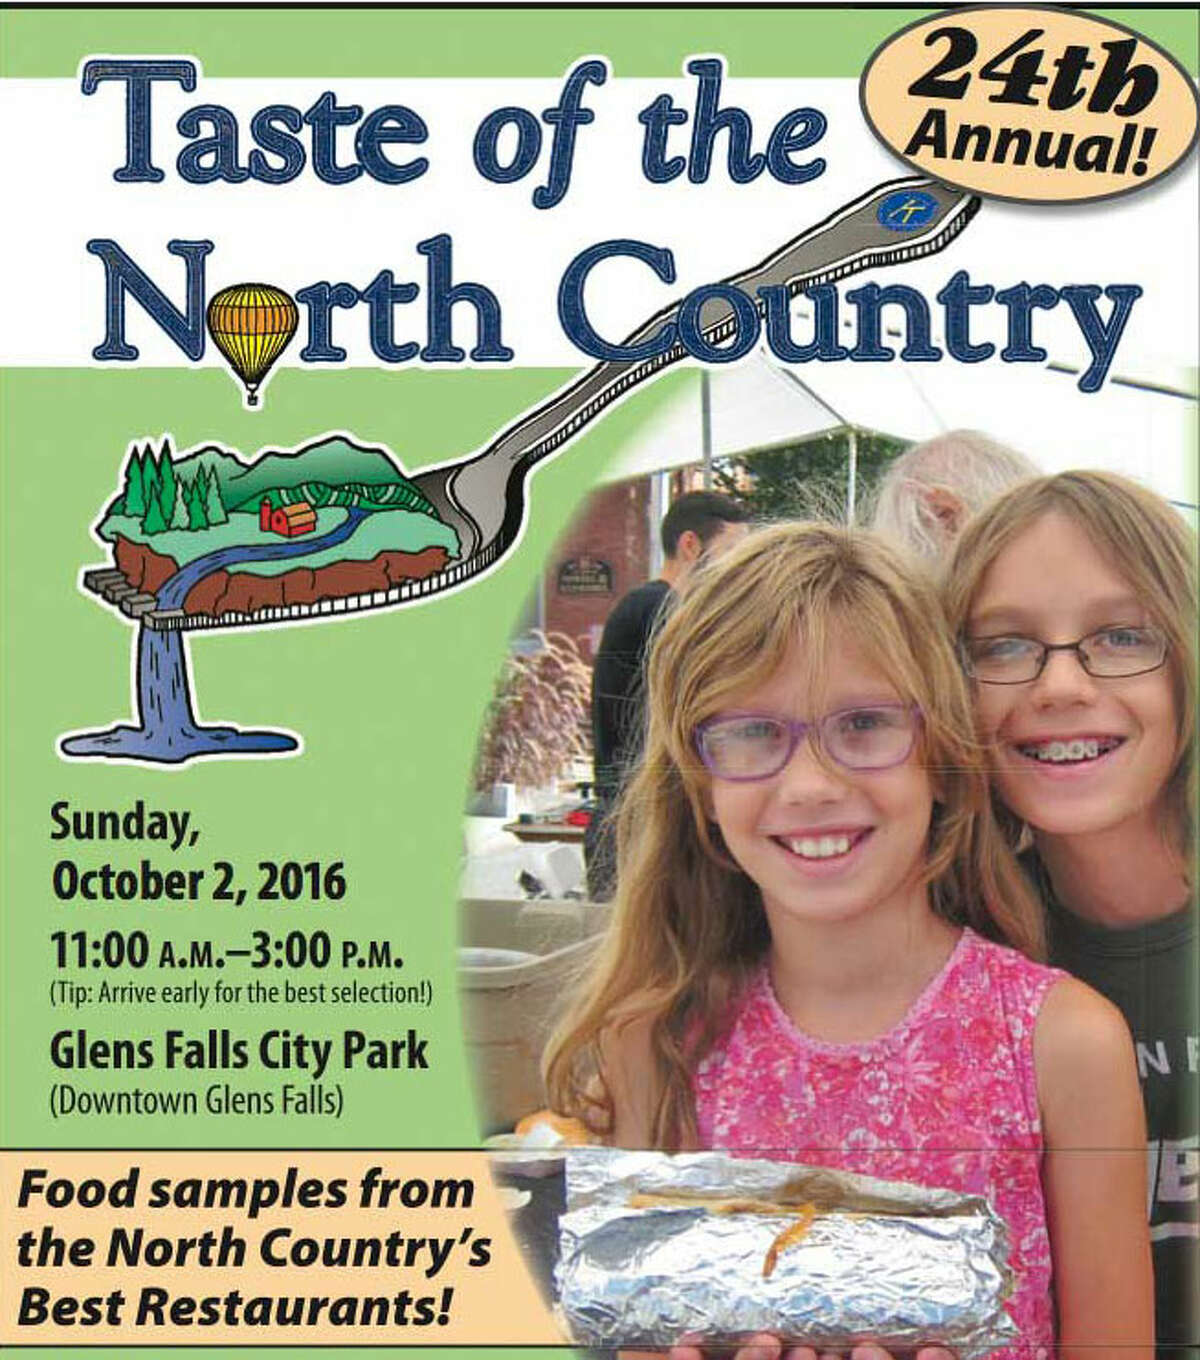 Oct. 2 : 24th Annual Taste of the North Country, 11 a.m. - 3 p.m. Glens Falls City Park, glensfallstaste.com.